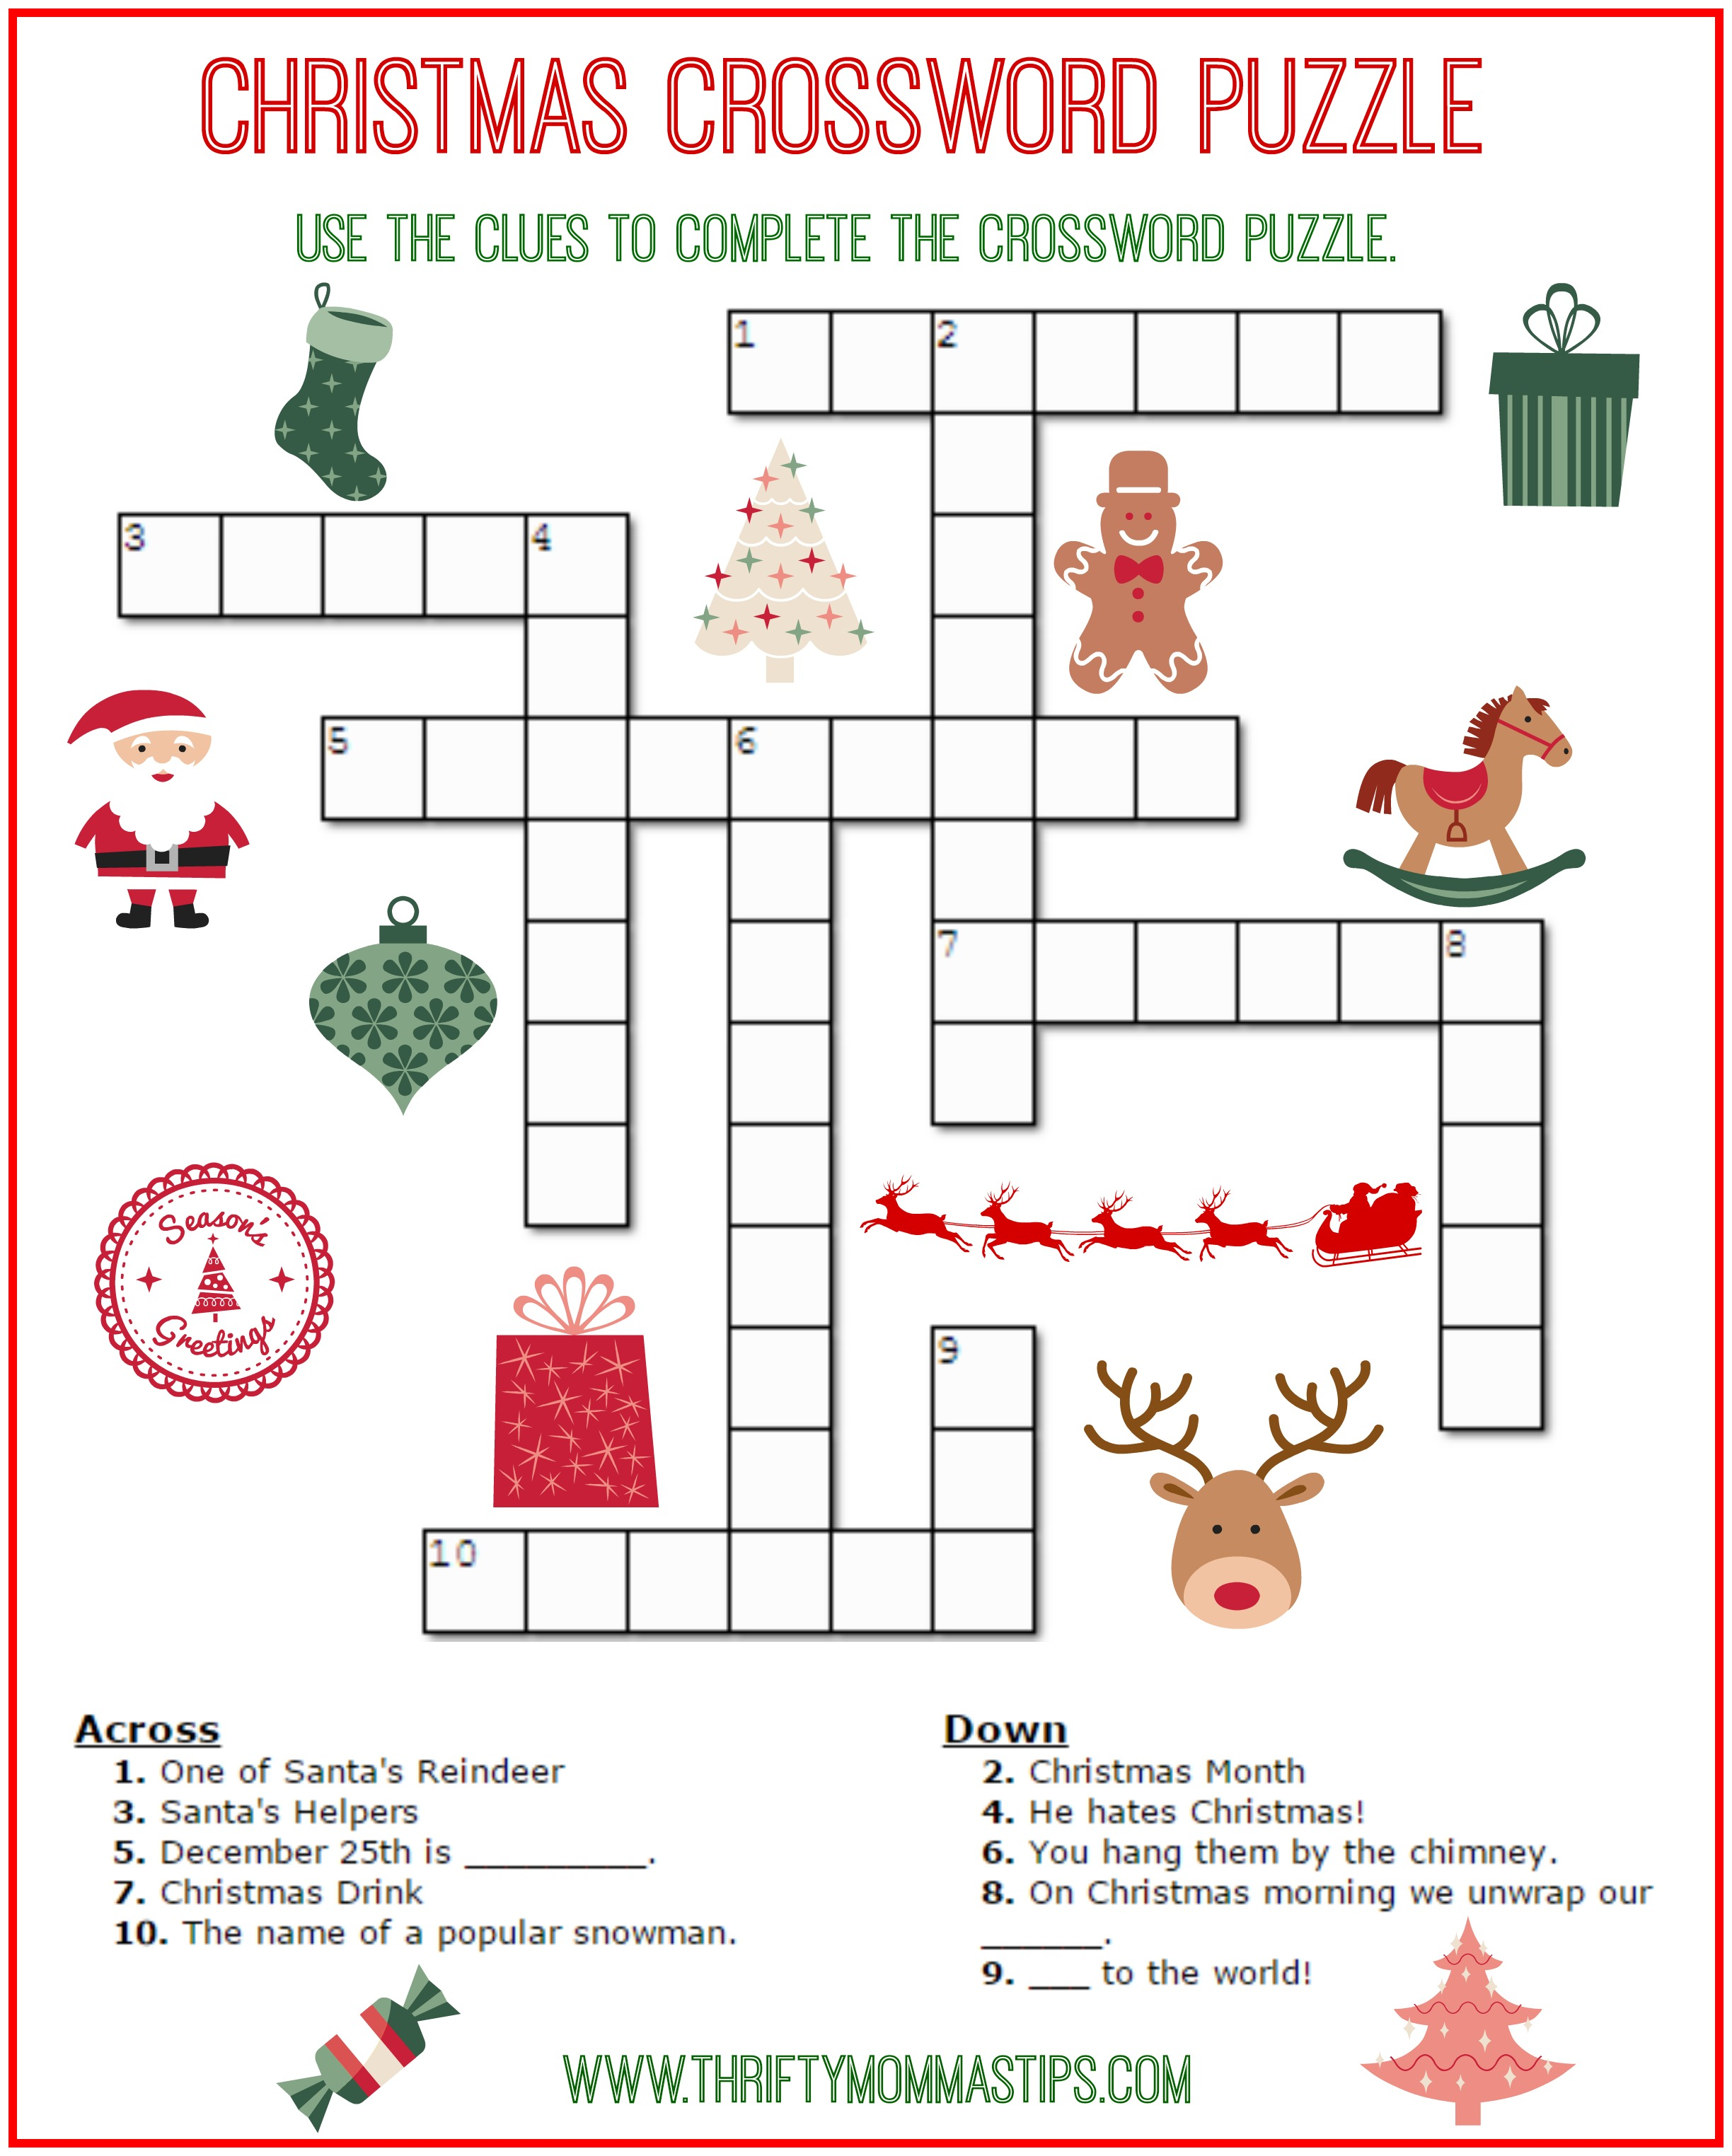 picture regarding Christmas Crossword Puzzle Printable identify Xmas Crossword Puzzle Printable - Thrifty Mommas Strategies